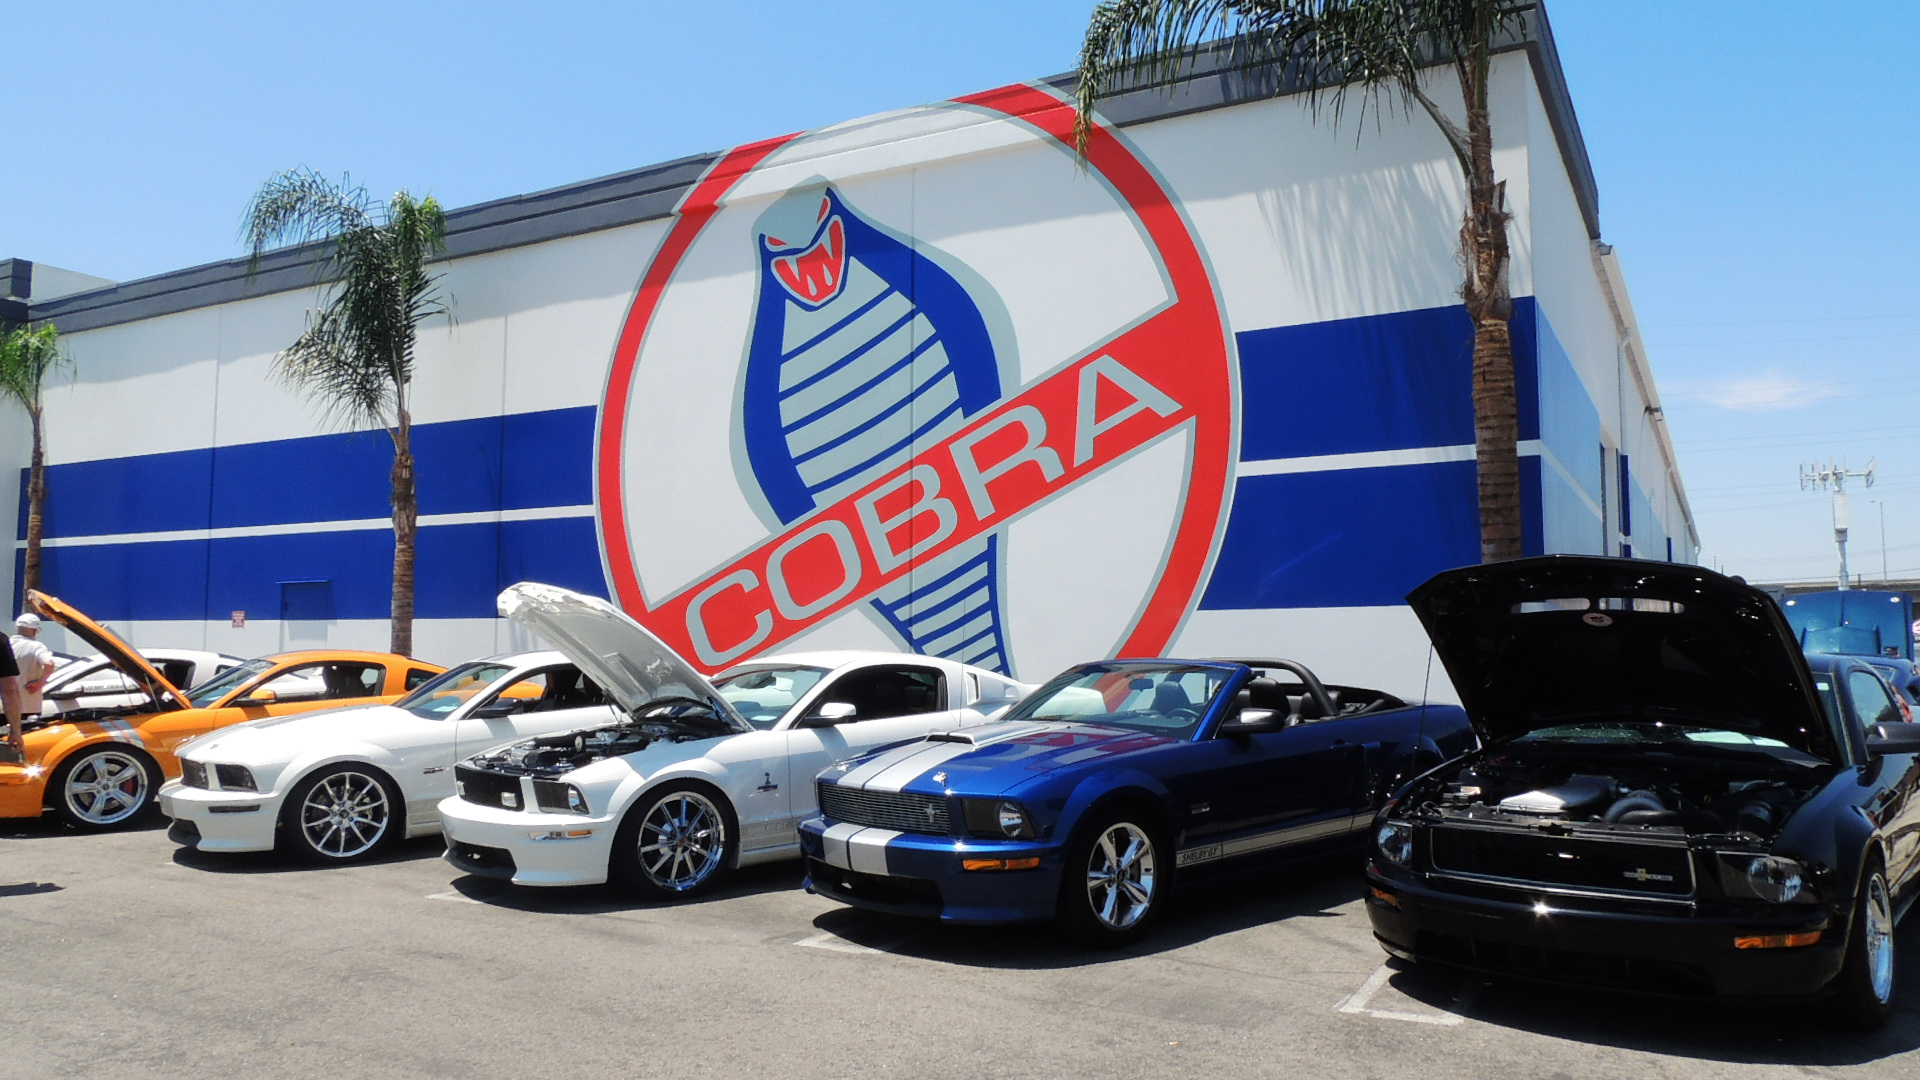 Shelby American gathering, informal car show, and charity toy drive this Saturday, December 14